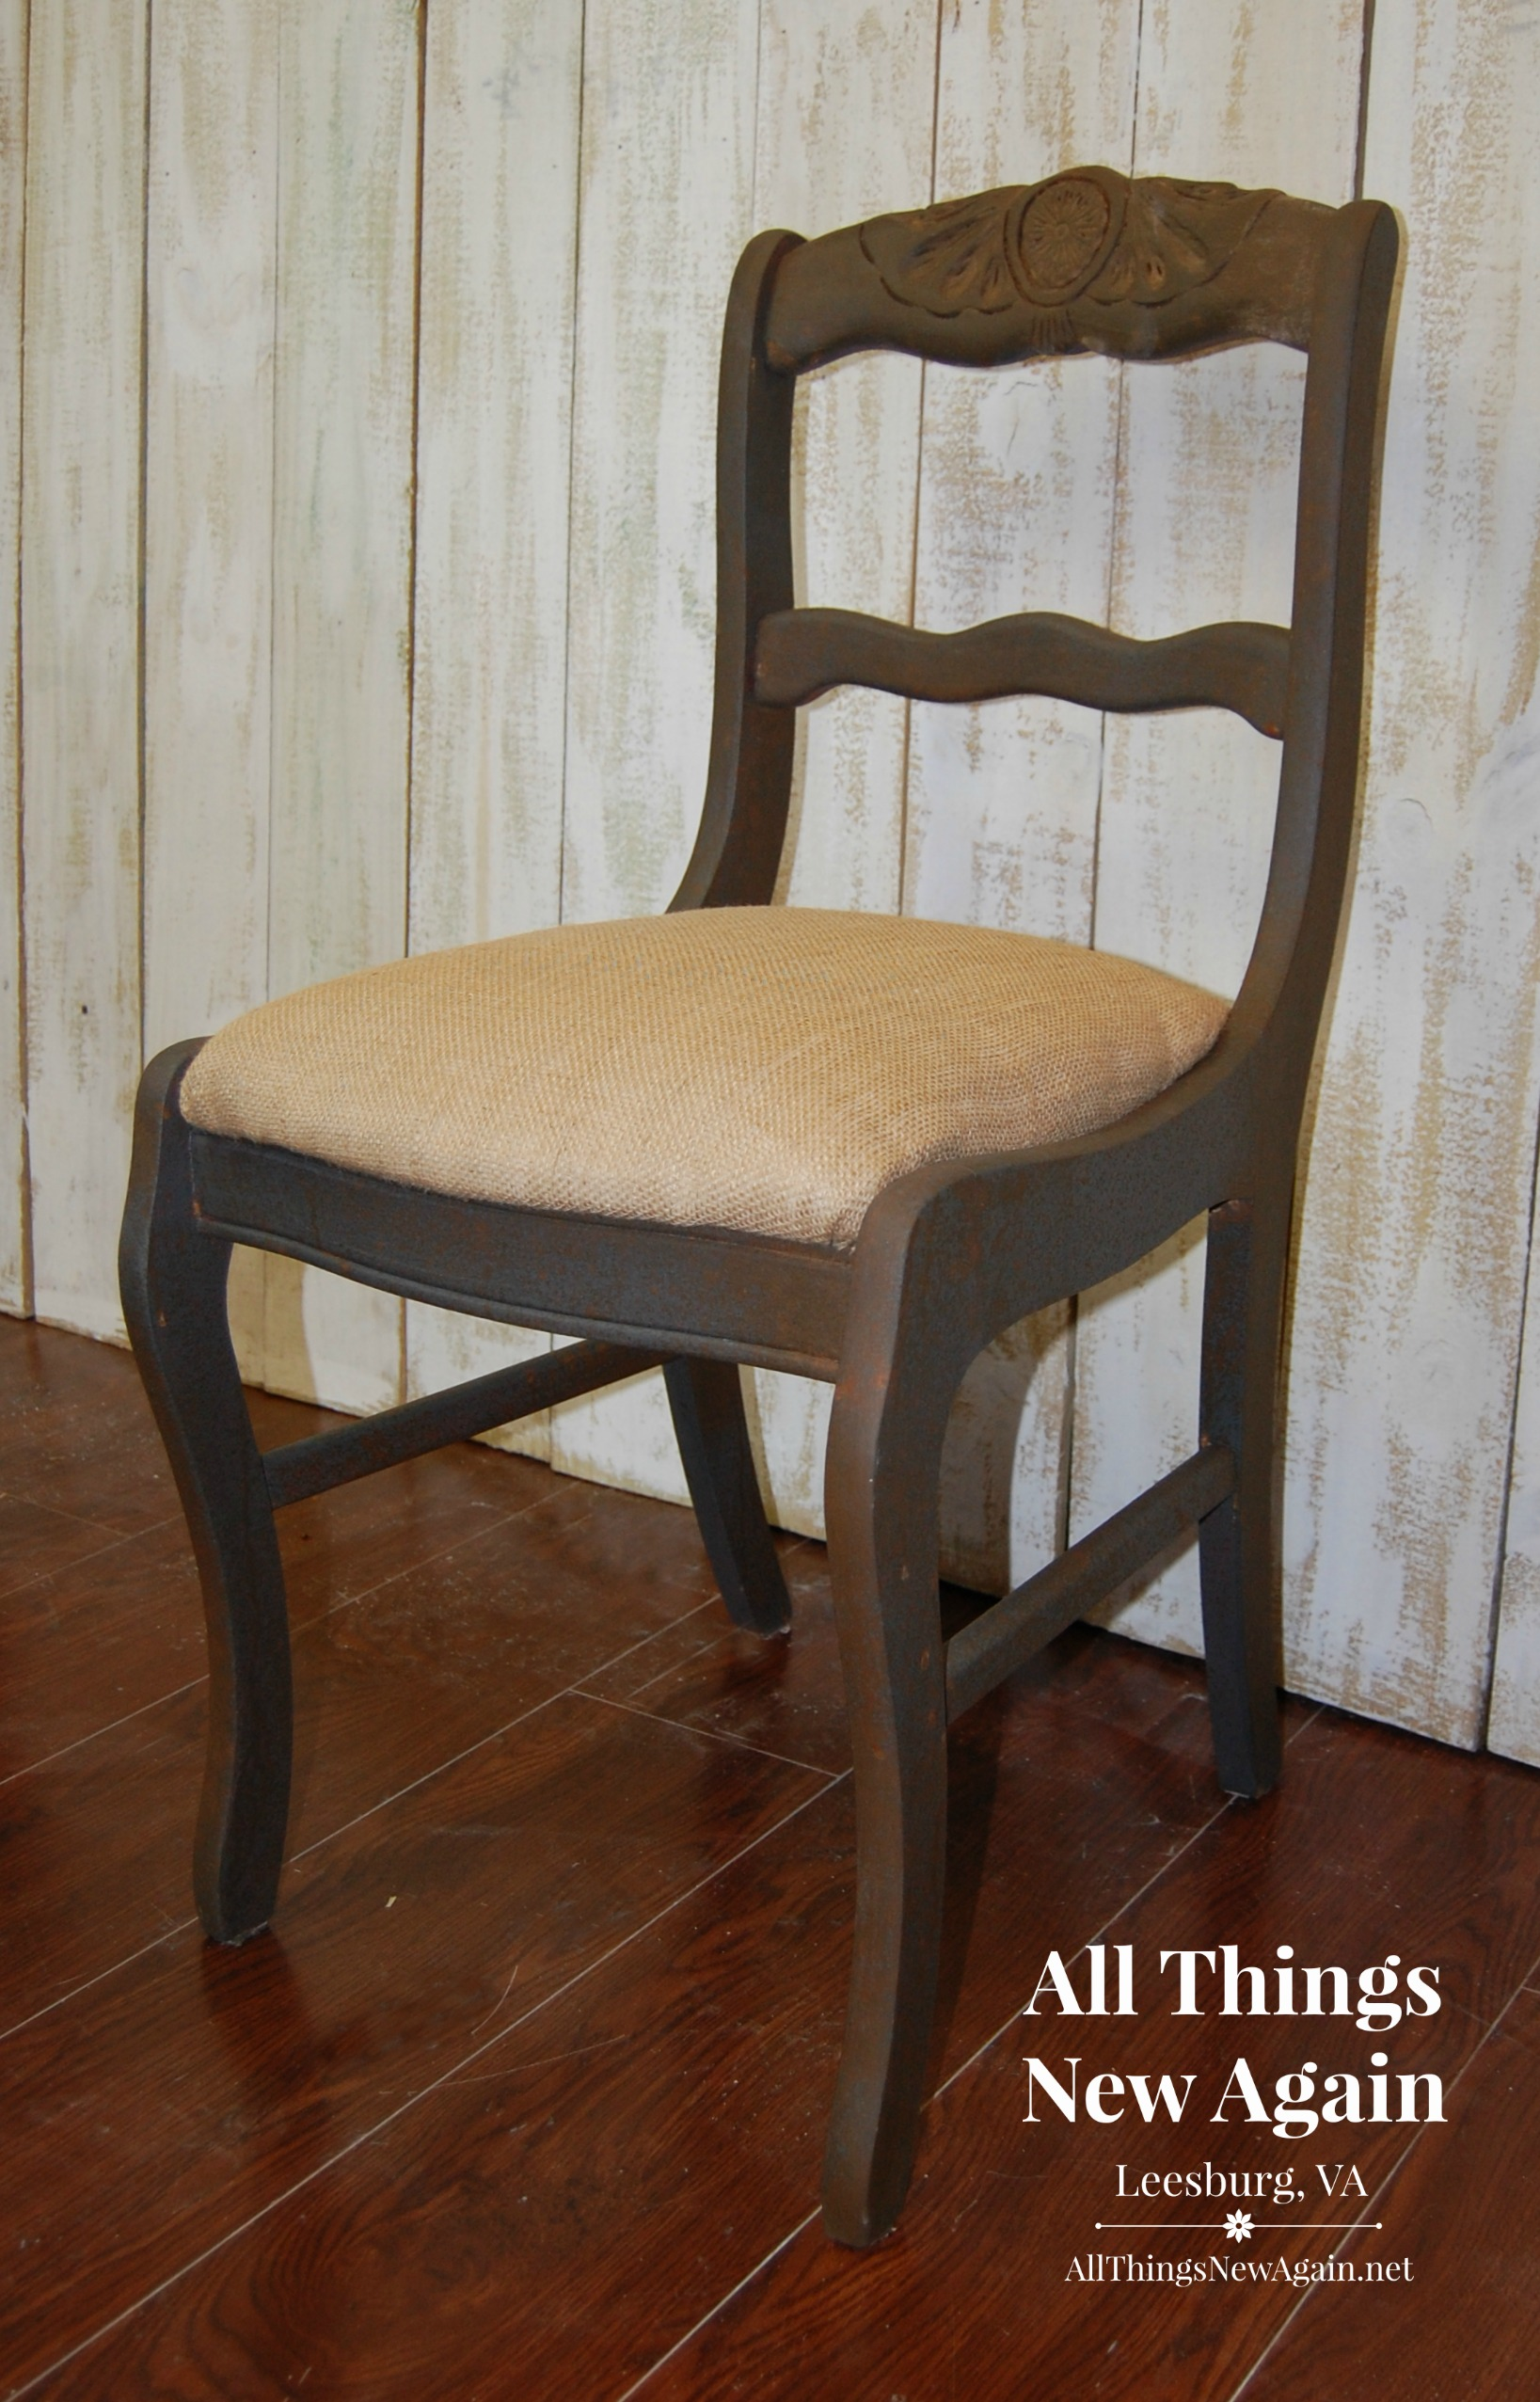 Charming Dixie Belle Paint Co.   Patina Collection   Rusty Chair   Patina Furniture  DIY  